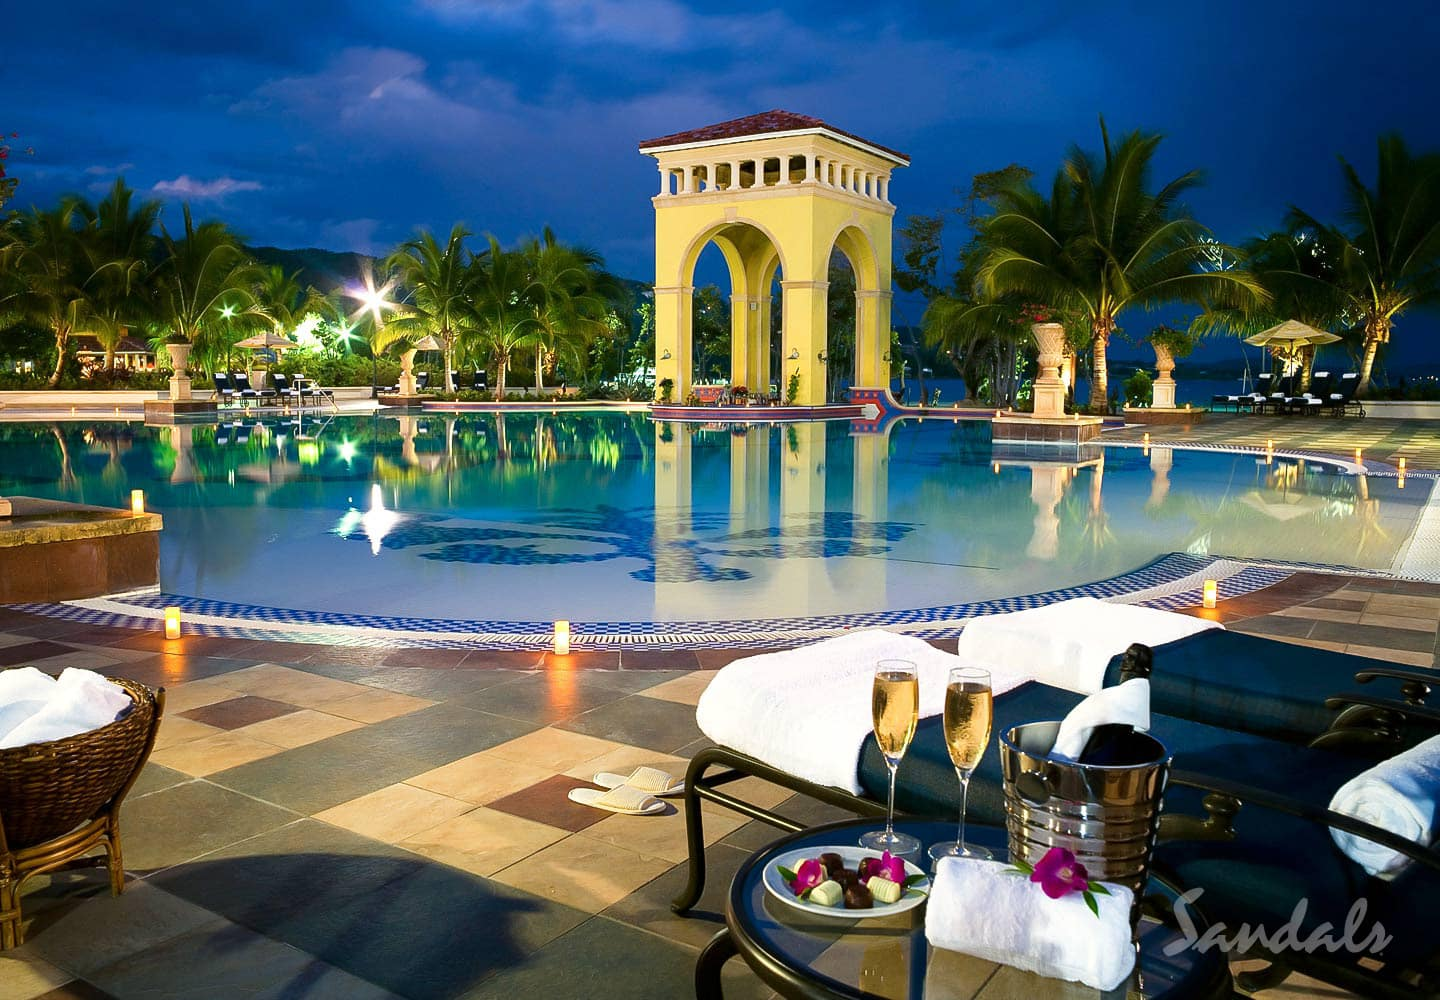 Poolside Enjoying Champagne At The Sandals Whitehouse Jamaica Luxury Resort All Inclusive Vacations S